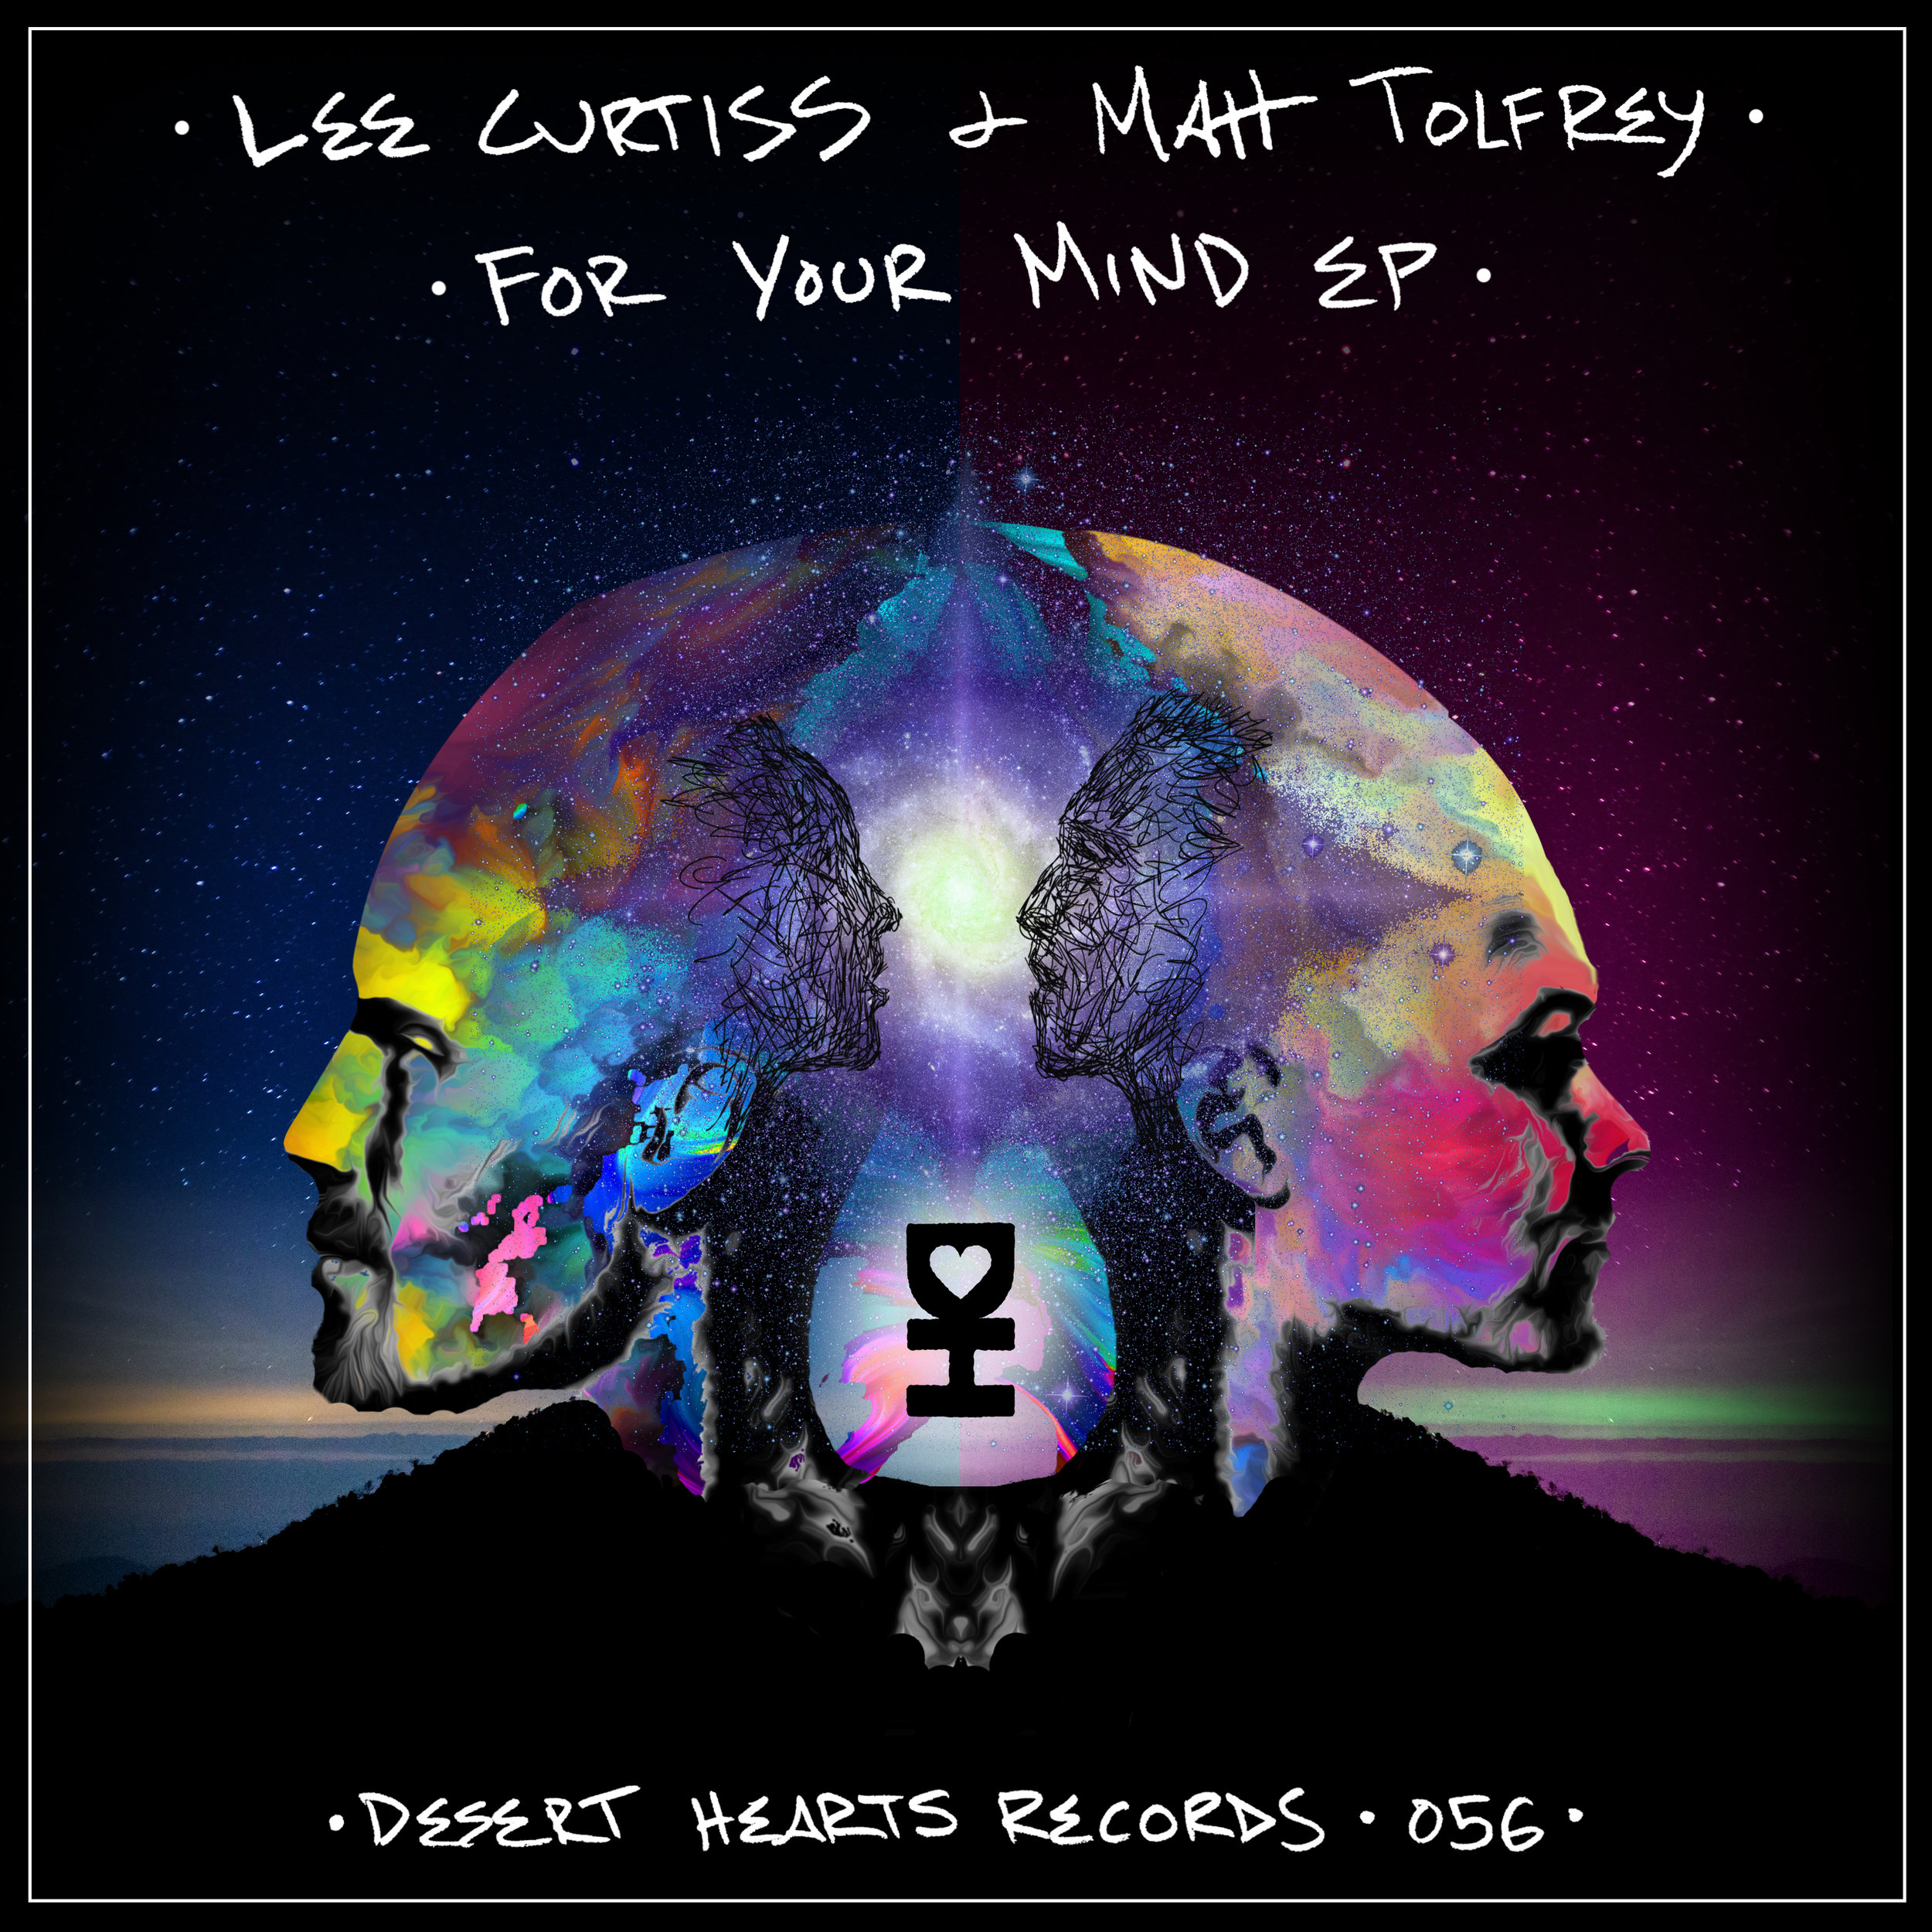 [DH056] Lee Curtis & Matt Tolfrey - For Your Mind EP.jpg